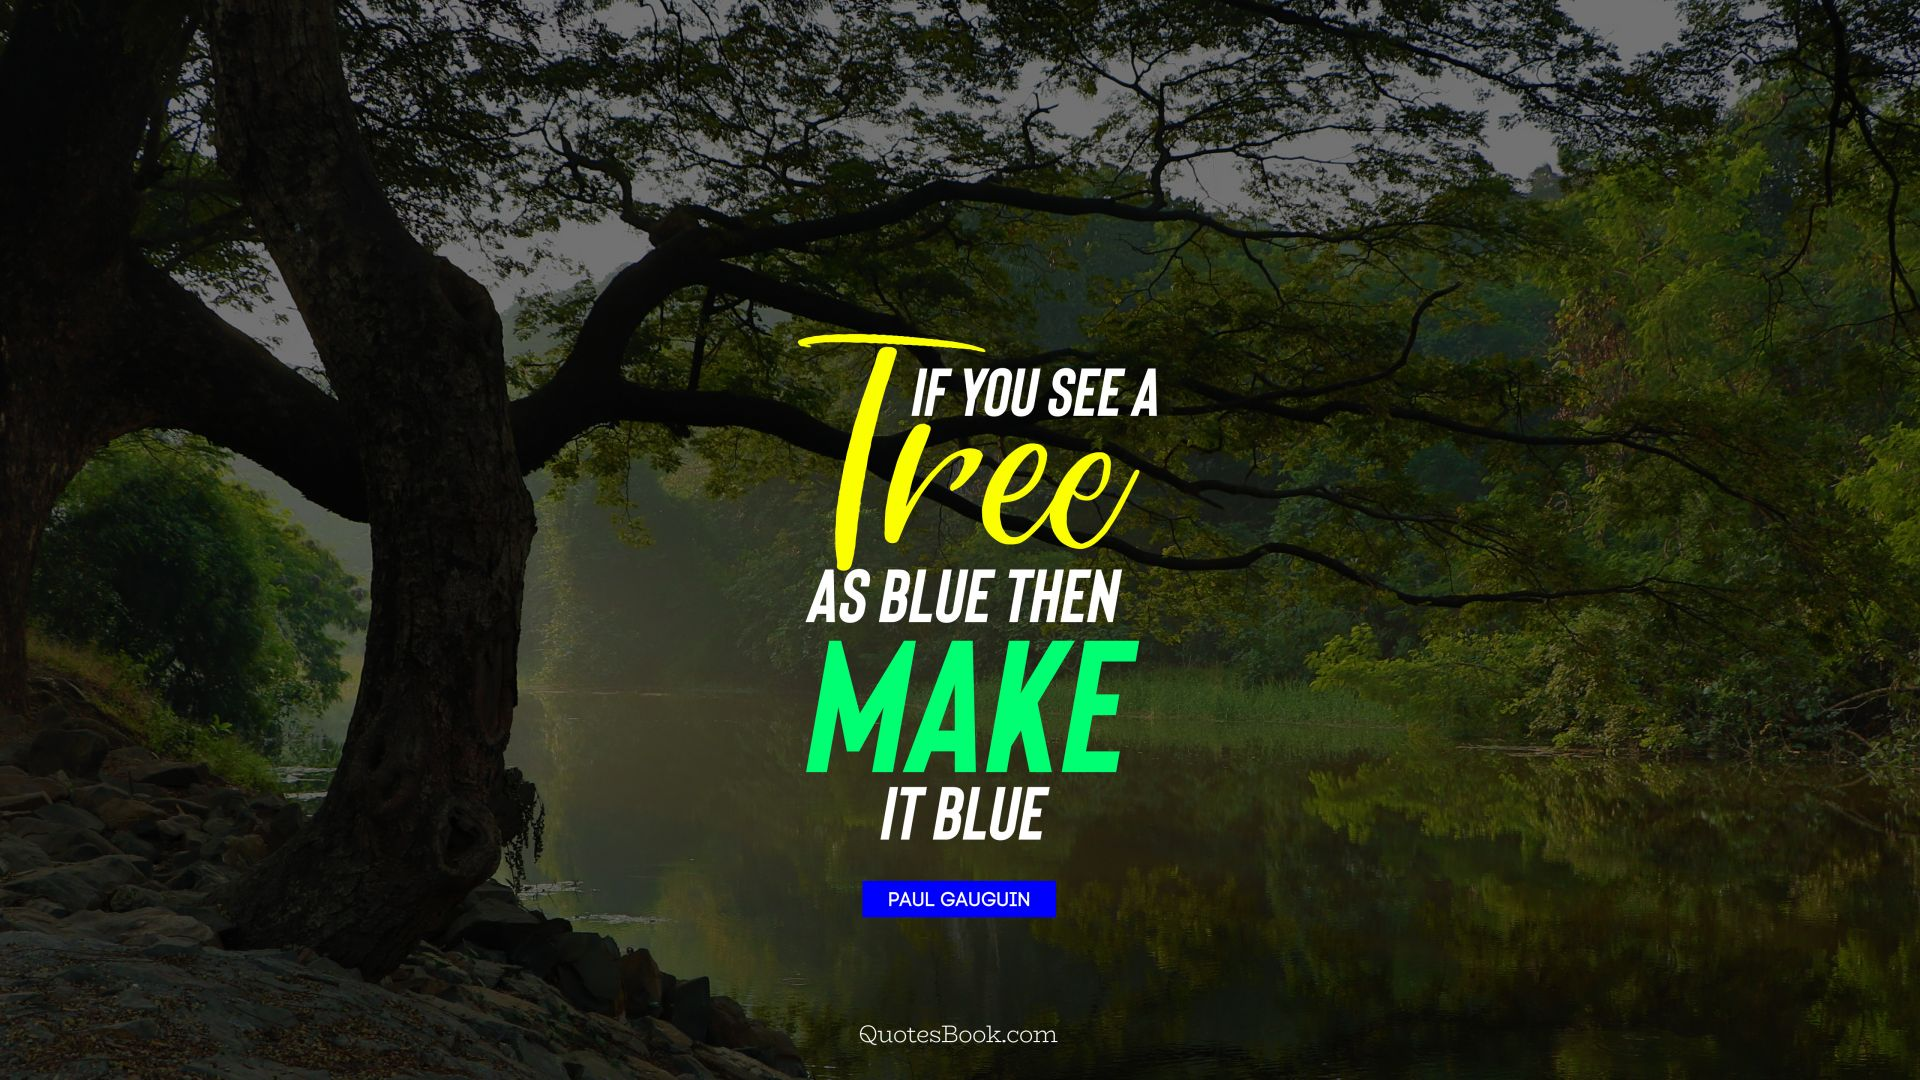 If you see a tree as blue then make it blue. - Quote by Paul Gauguin